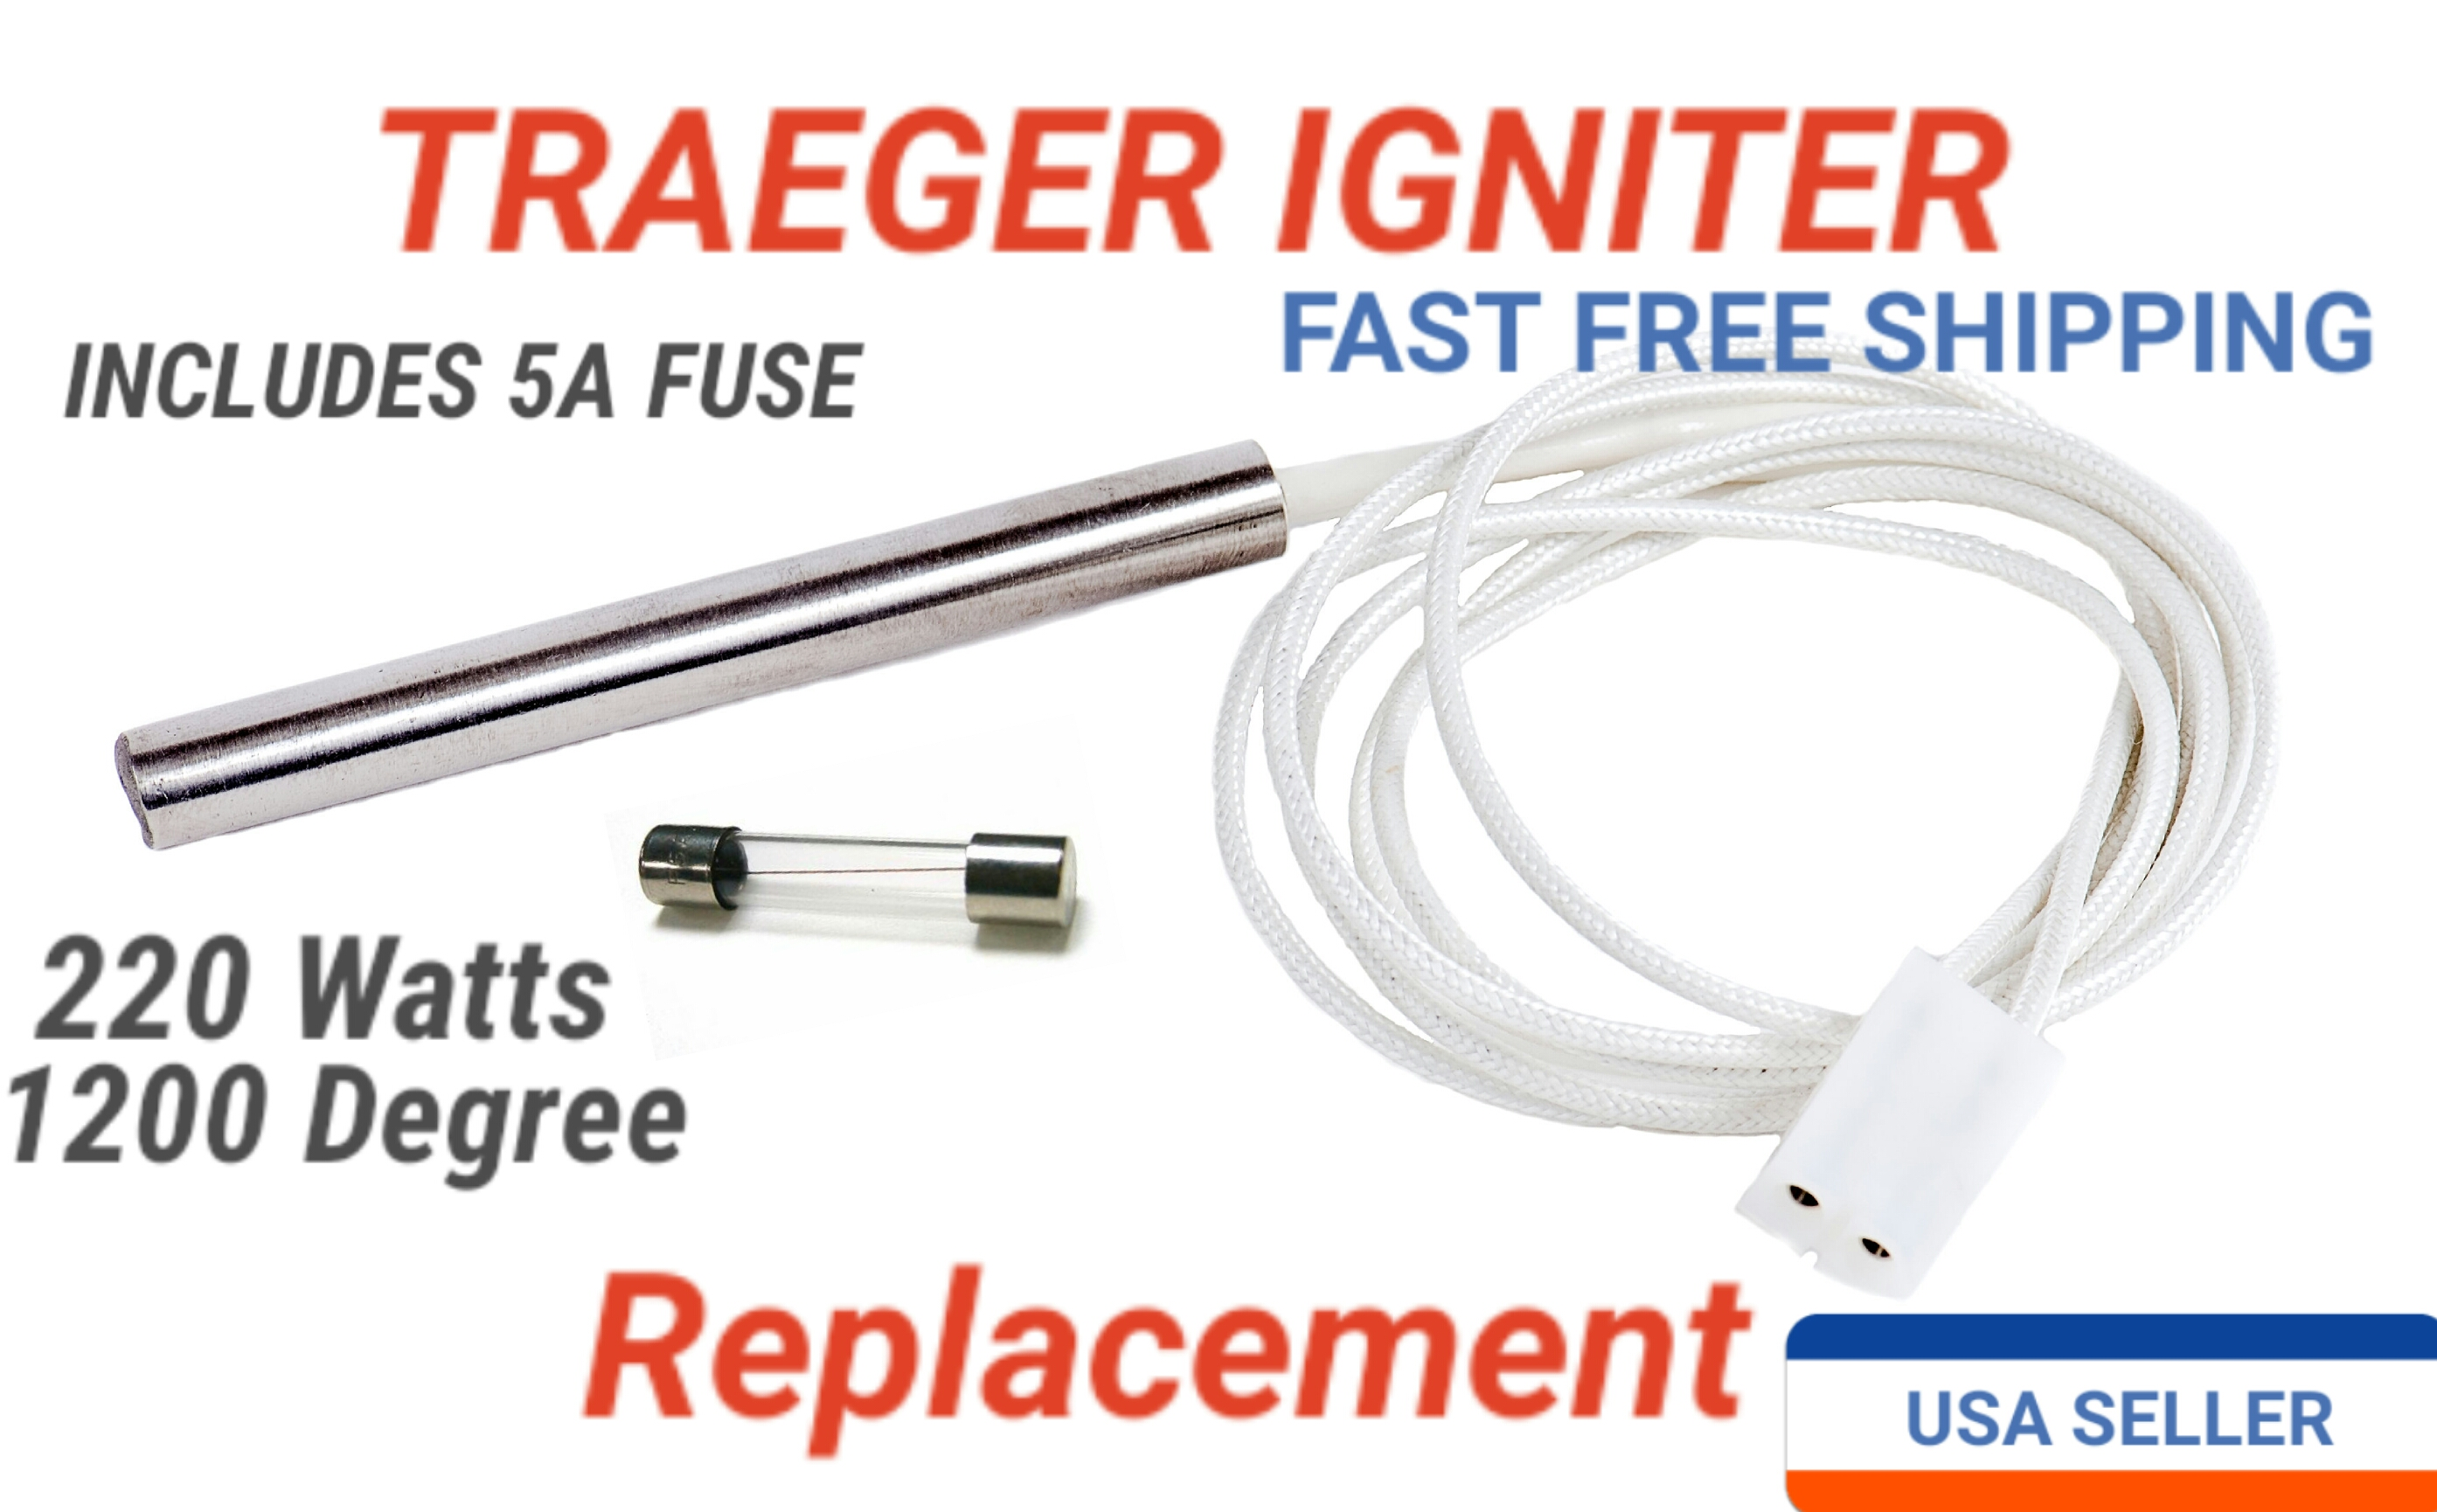 traeger igniter upgrade replacement watts long  traeger igniter upgrade replacement 220 watts 3 5prime long 3 8prime 1200 degree incoloy stainless fits all traegers